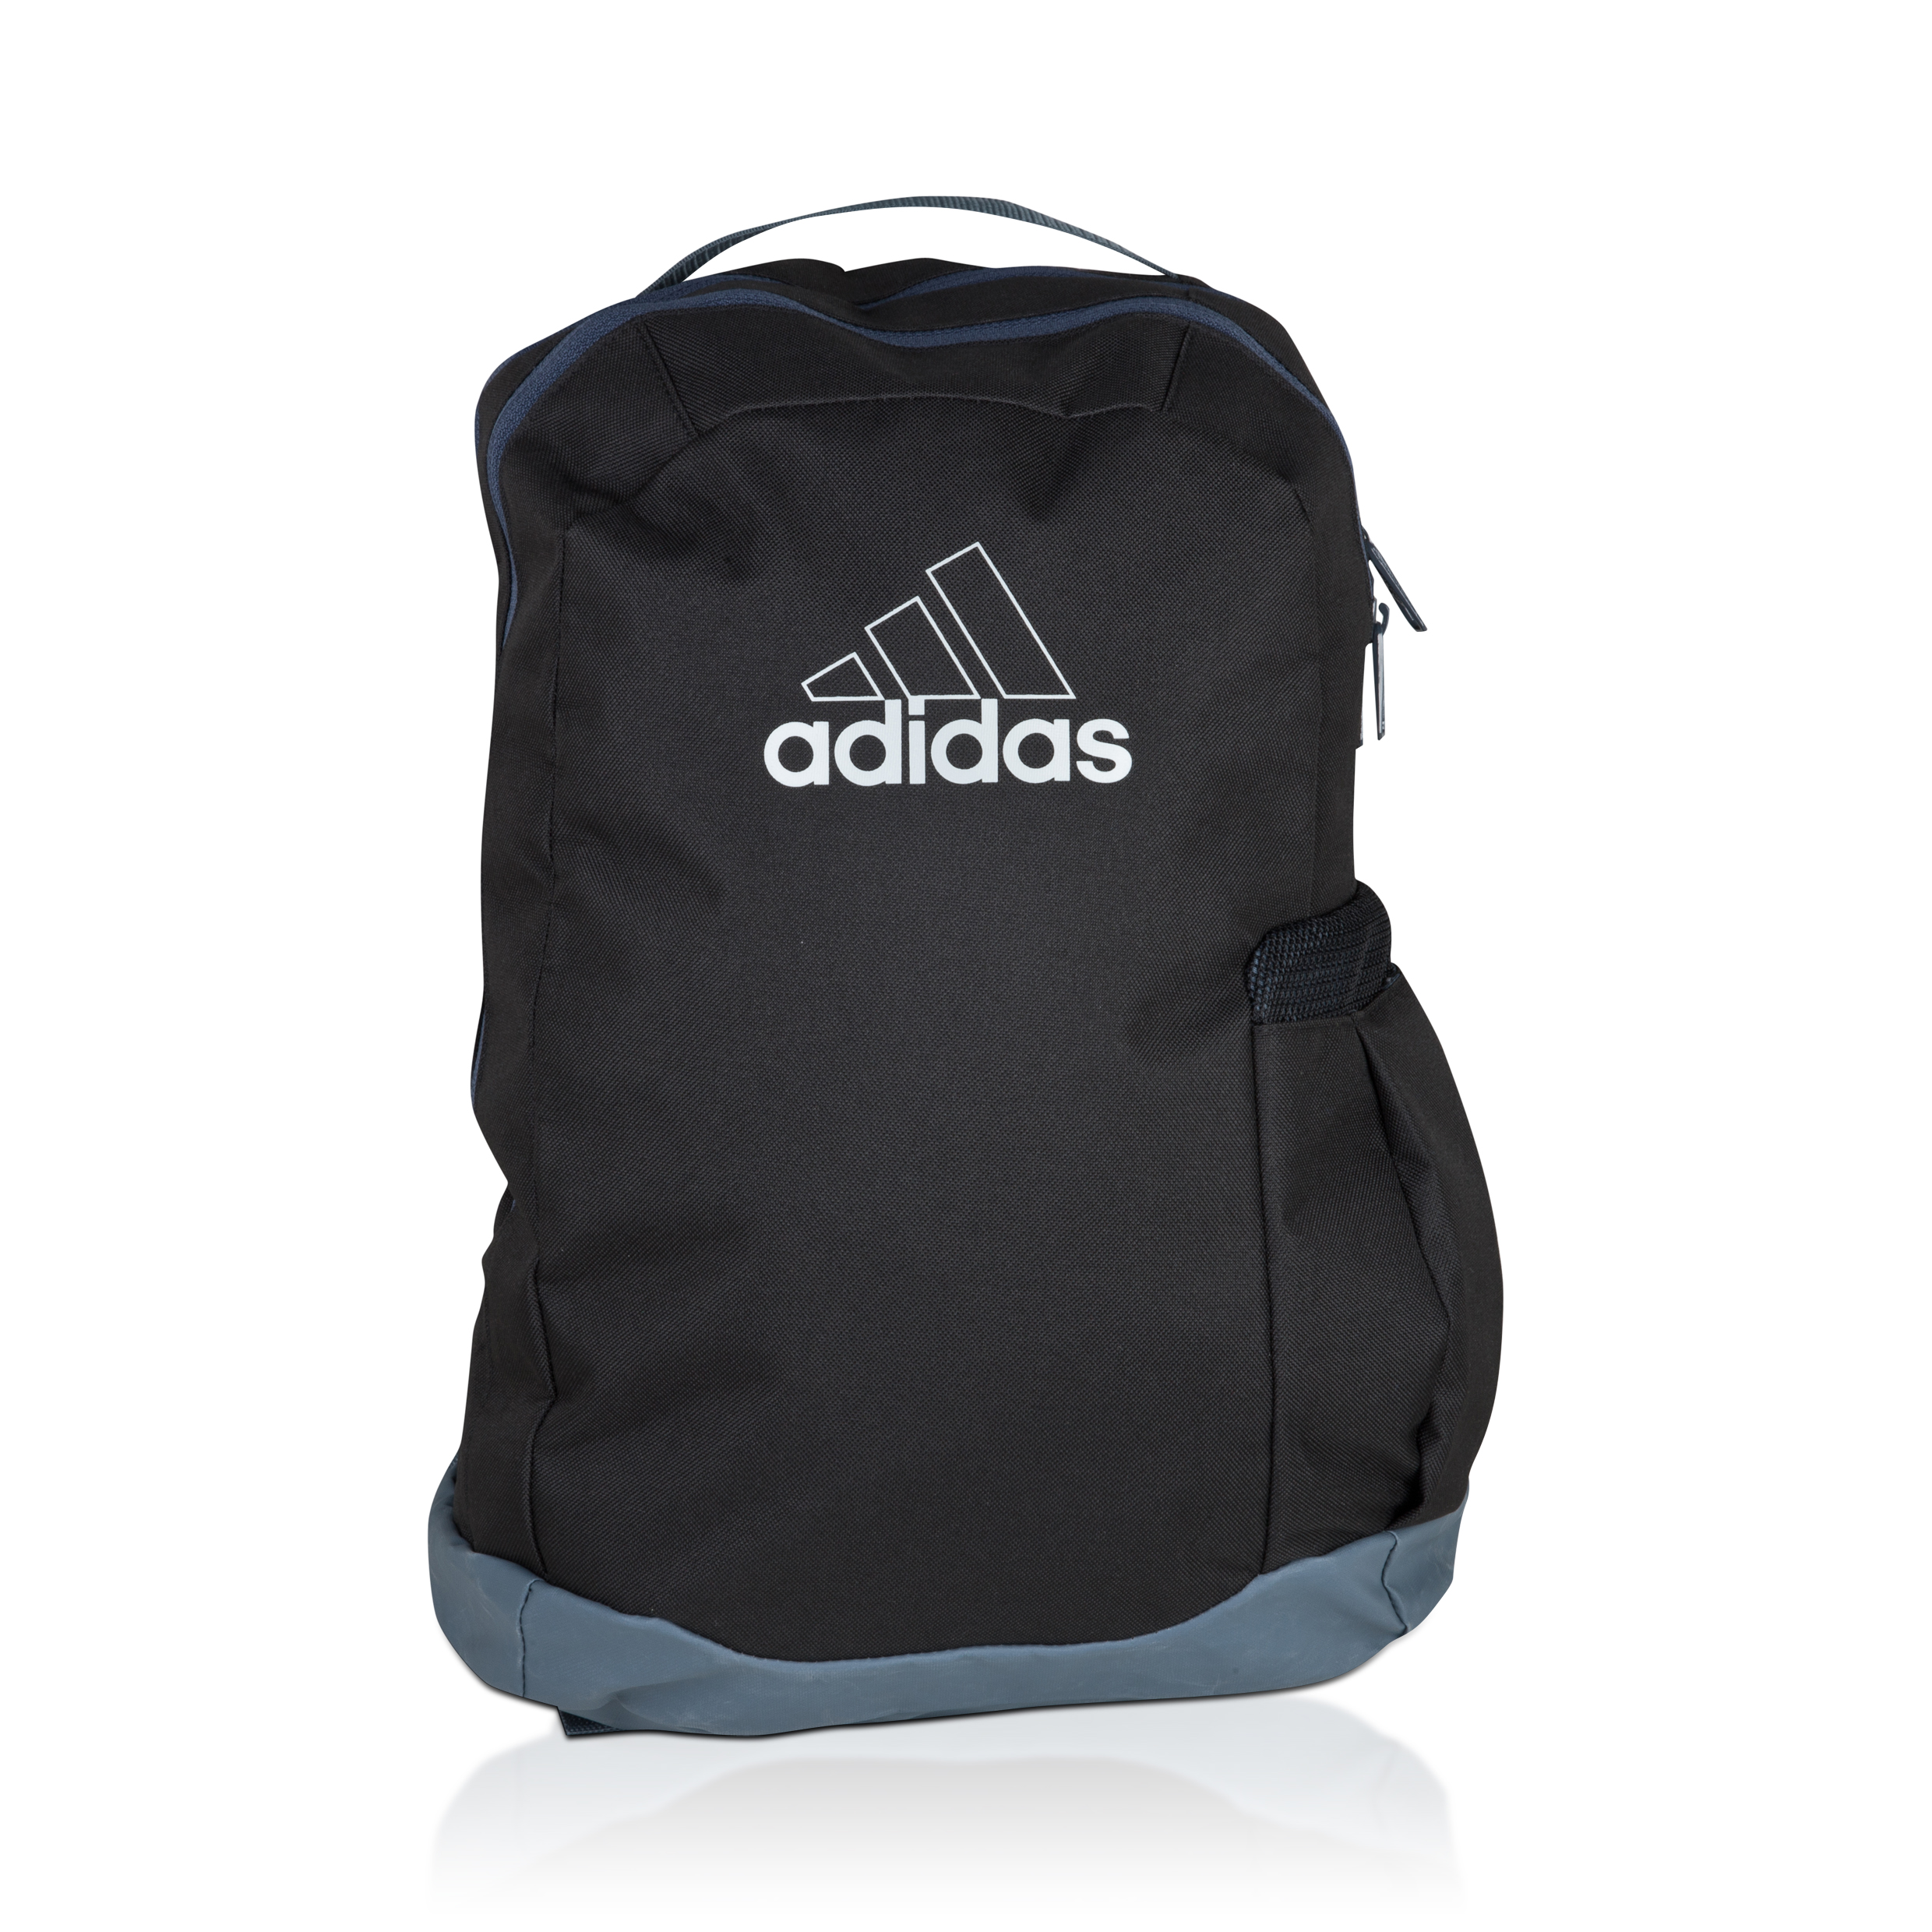 Adidas Performance Essentials Back Pack - Black/Dark Onix